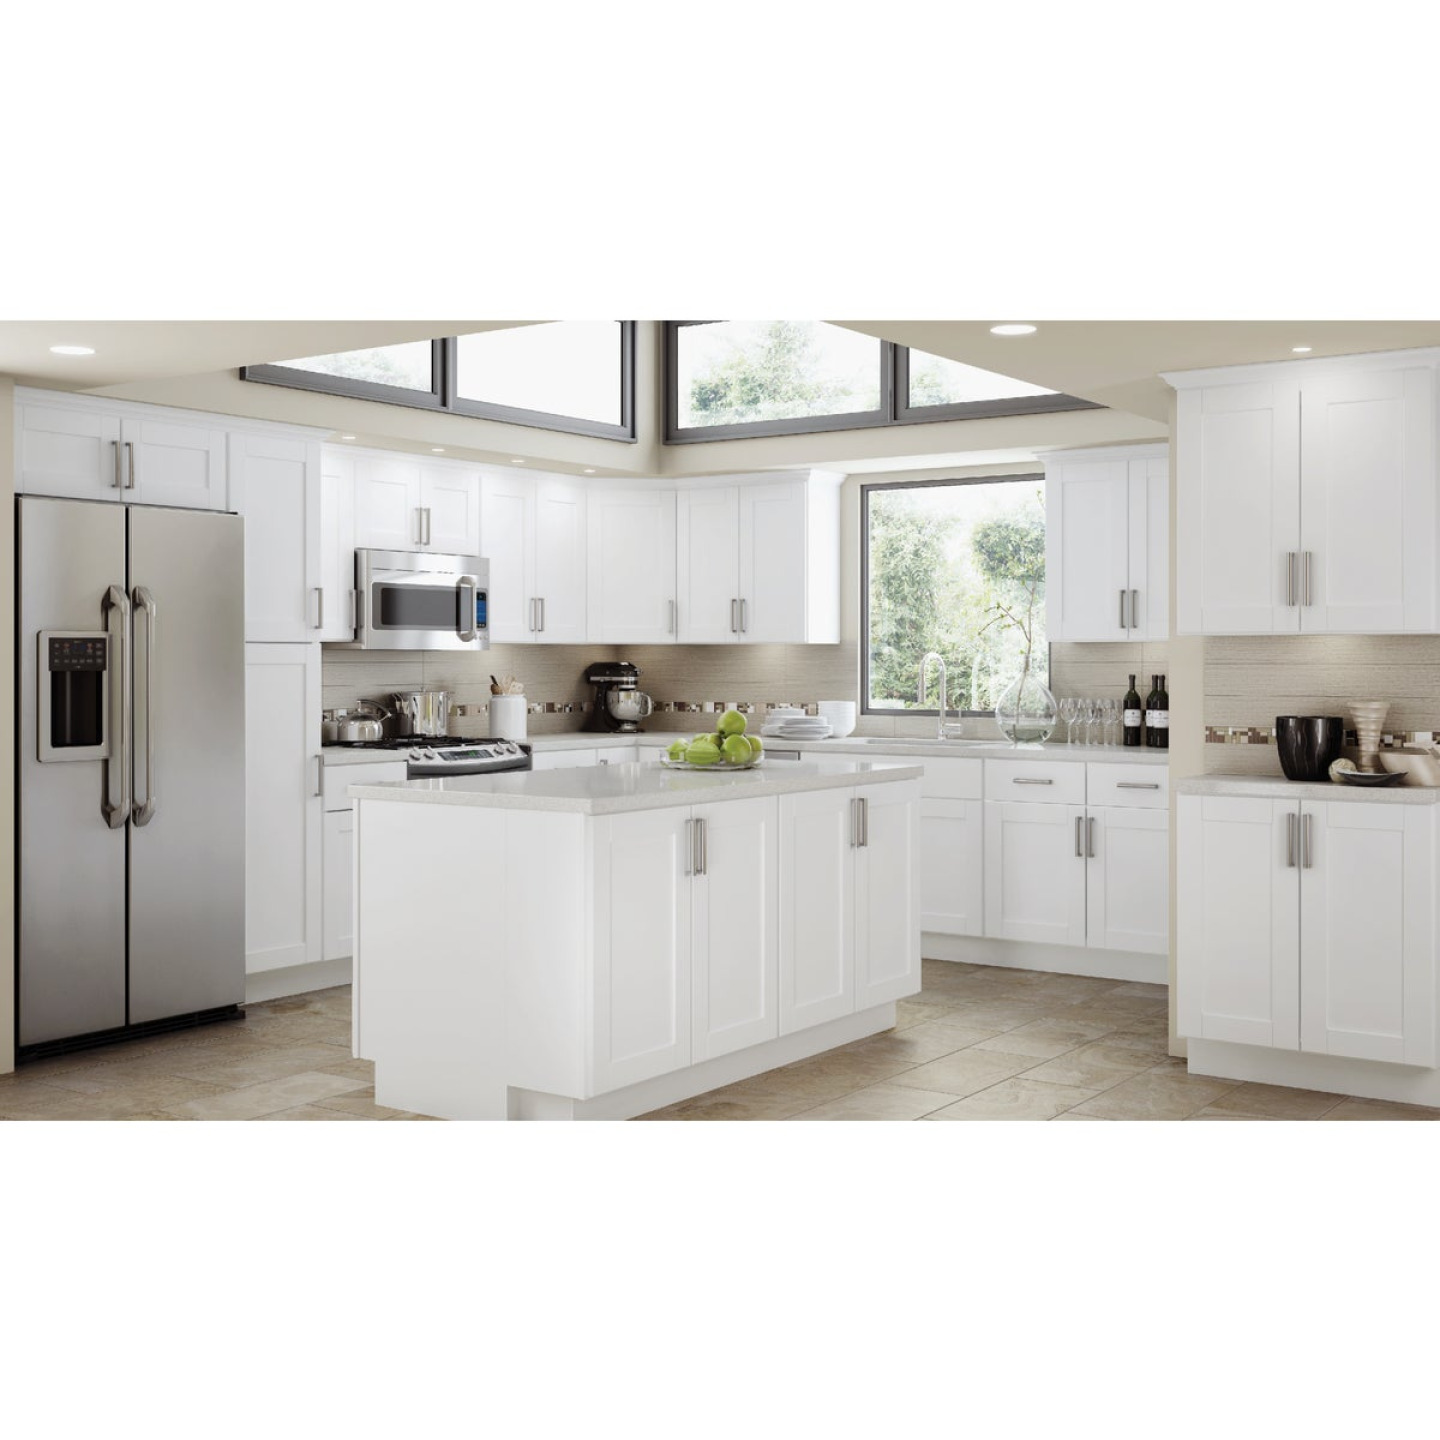 Continental Cabinets Andover Shaker 30 In. W x 34 In. H x 24 In. D White Thermofoil Base Kitchen Cabinet Image 2